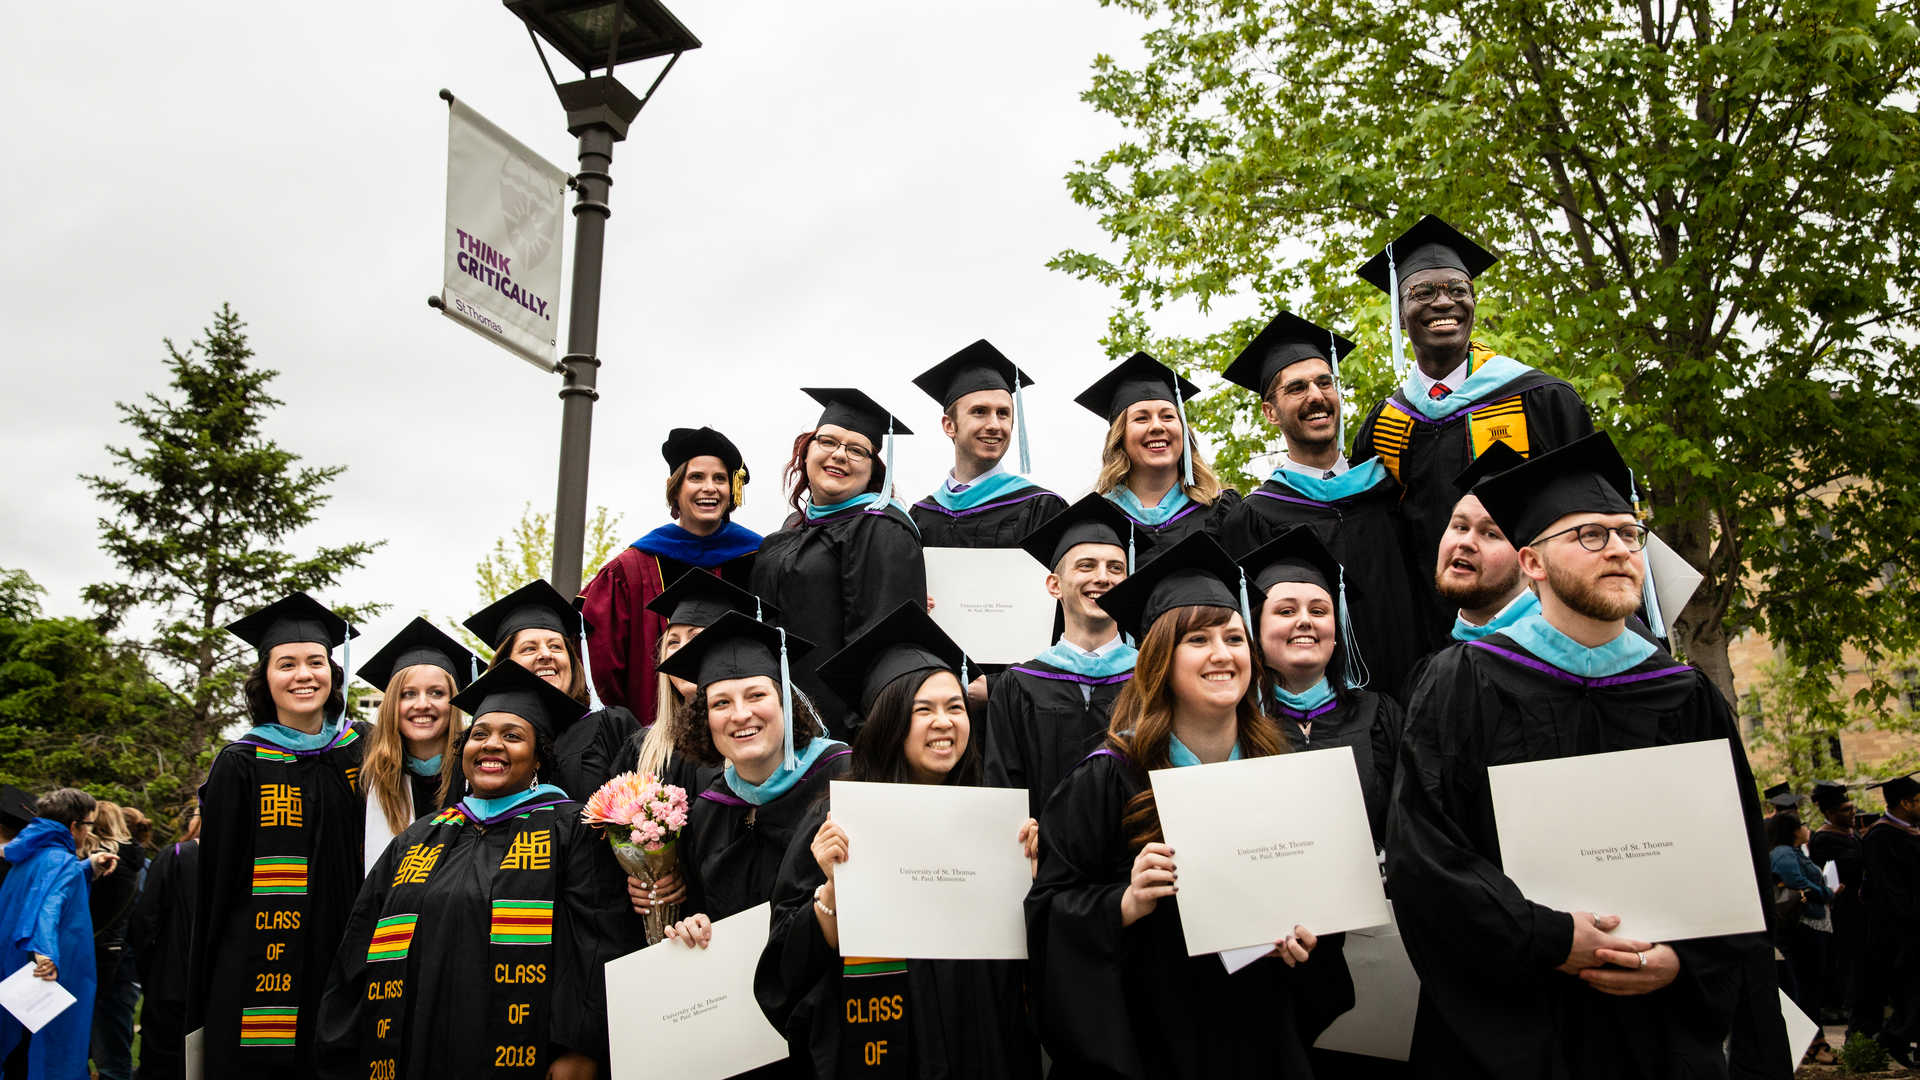 CELC graduates in group photo with diplomas